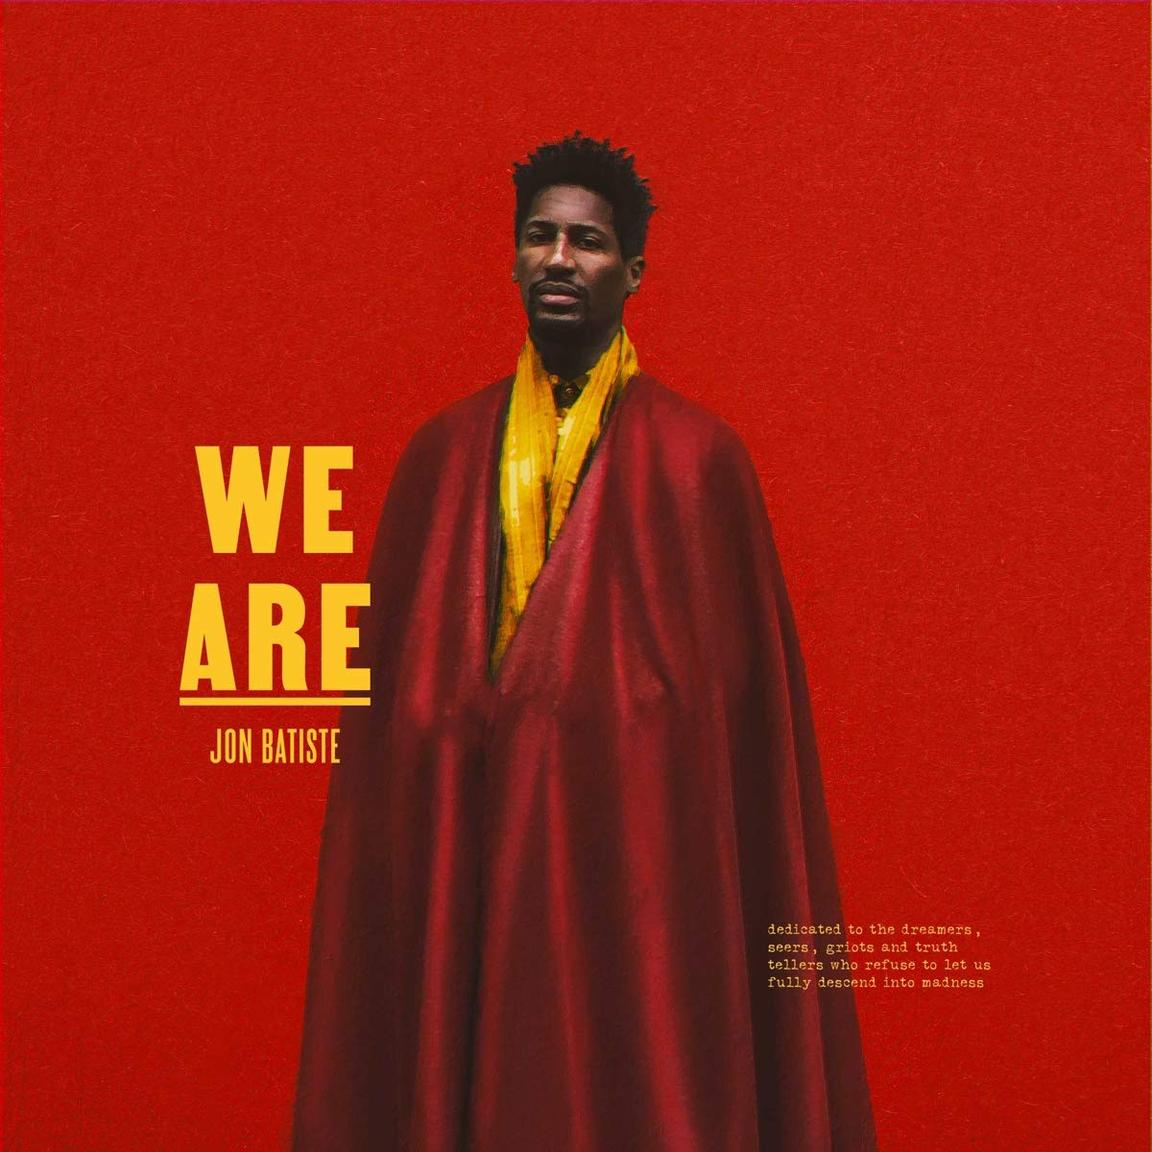 Jon Batiste / We Are